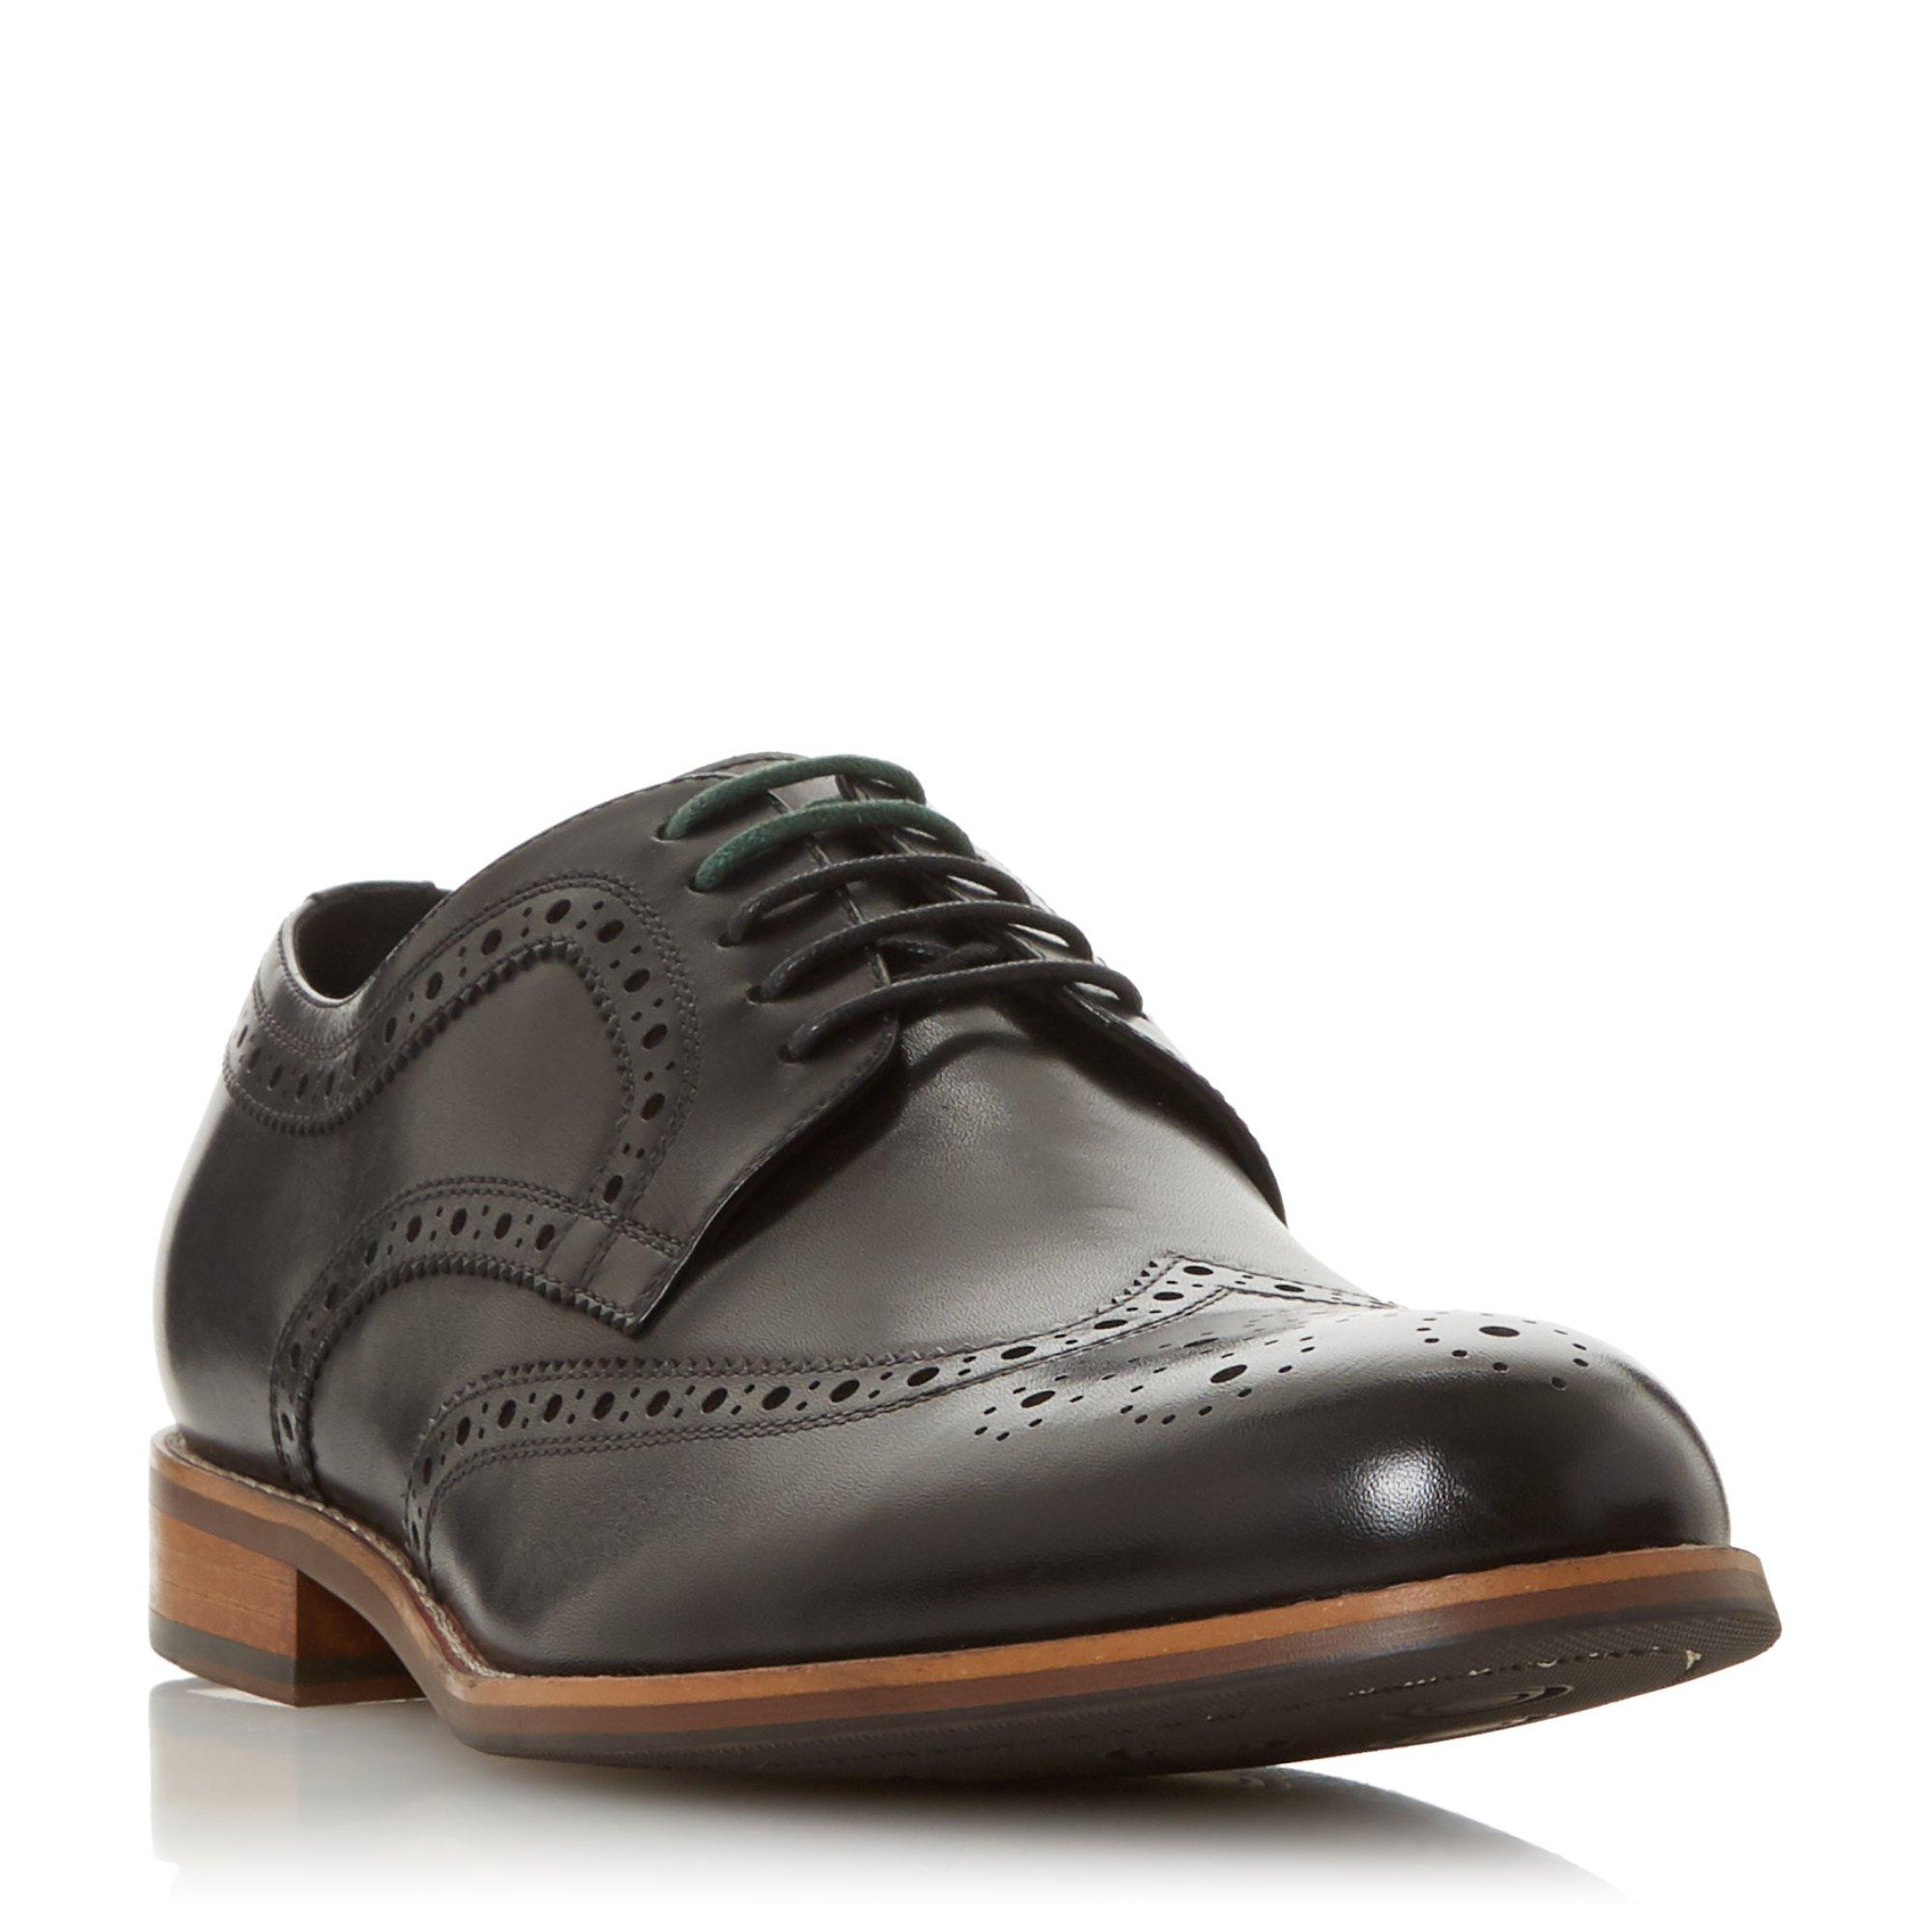 SADDLE DI - SADDLE DI - Wingtip Brogue Shoe